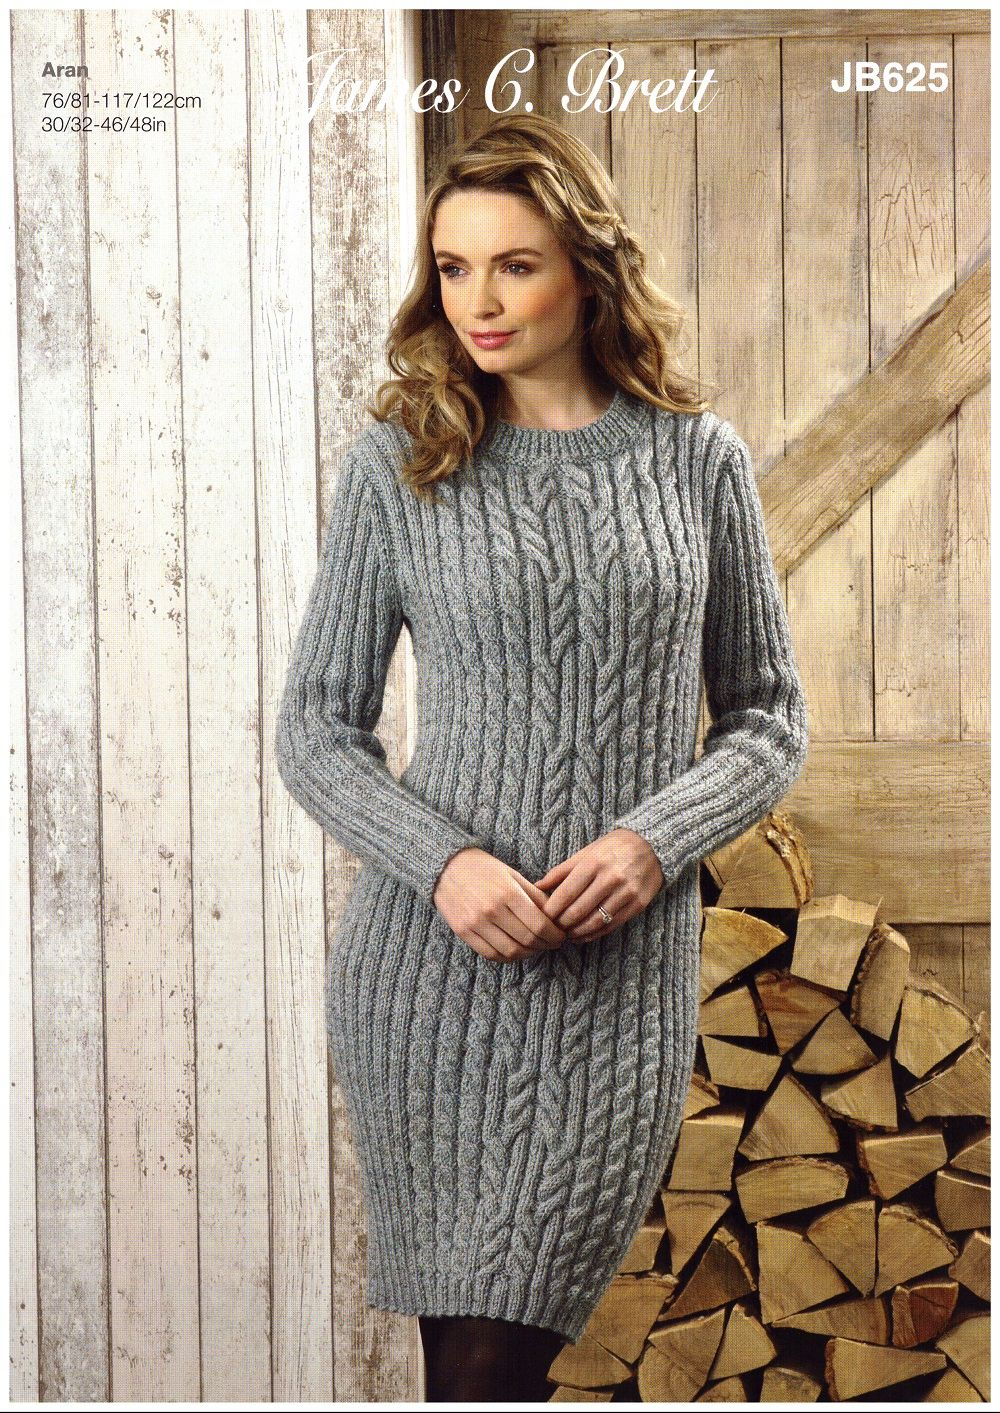 Knitting Pattern Dress James C Brett Ladies Sweater And Dress Knitting Pattern In Rustic Aran Jb625